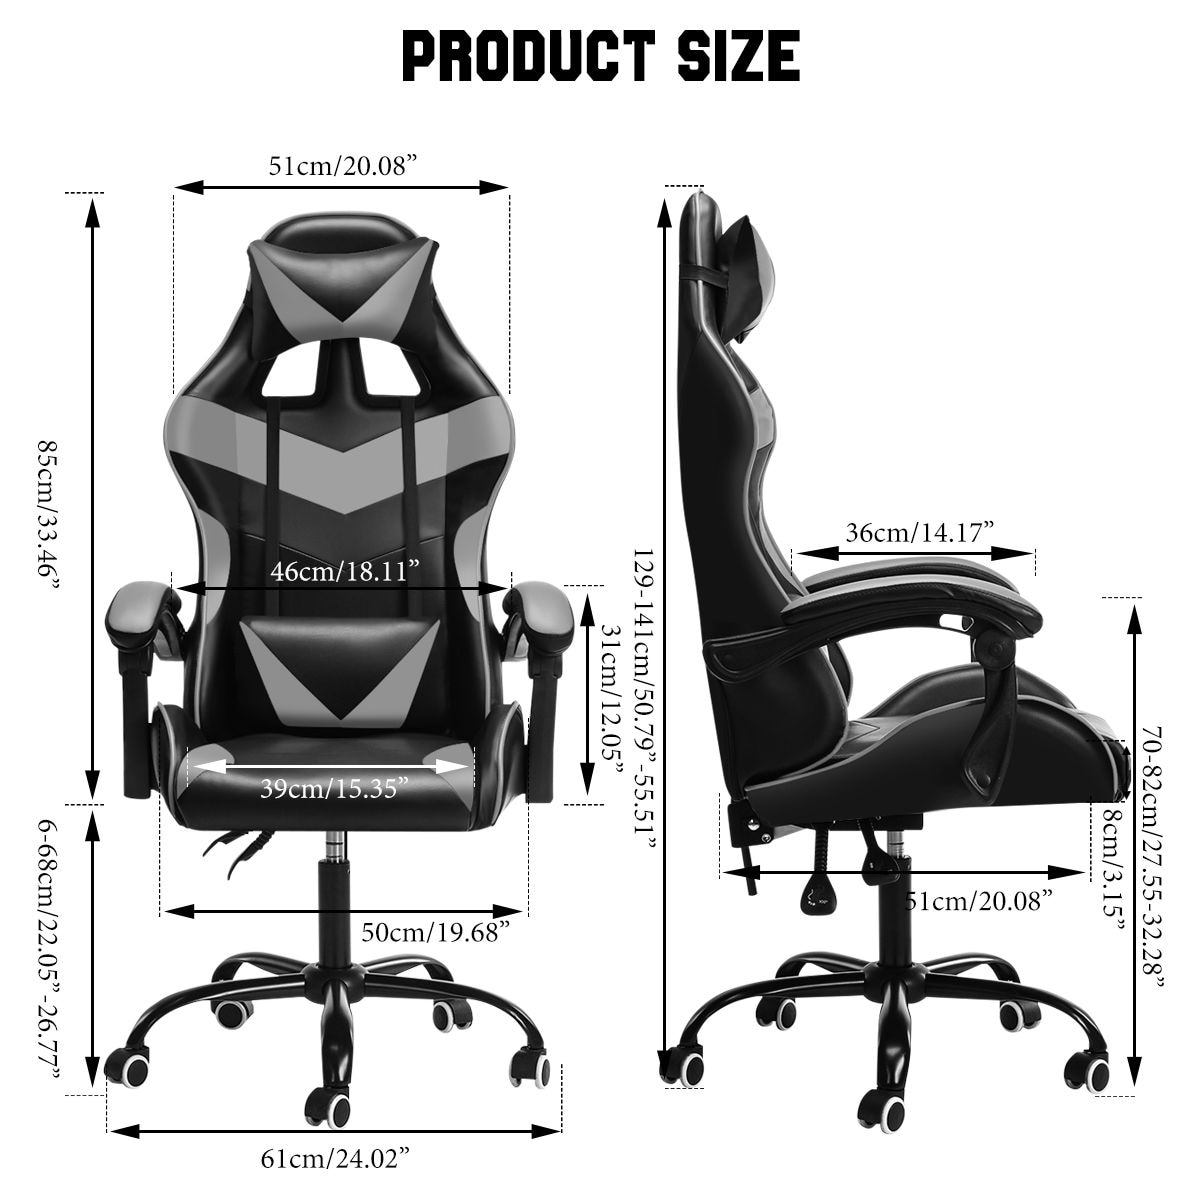 Hf438b042537b4934b36a46d47e1f40baA - Adjustable Office Chair Gaming Ergonomic Leather Racing Desk Chairs Gaming Computer Chaise Game Chairs Reclining Seating